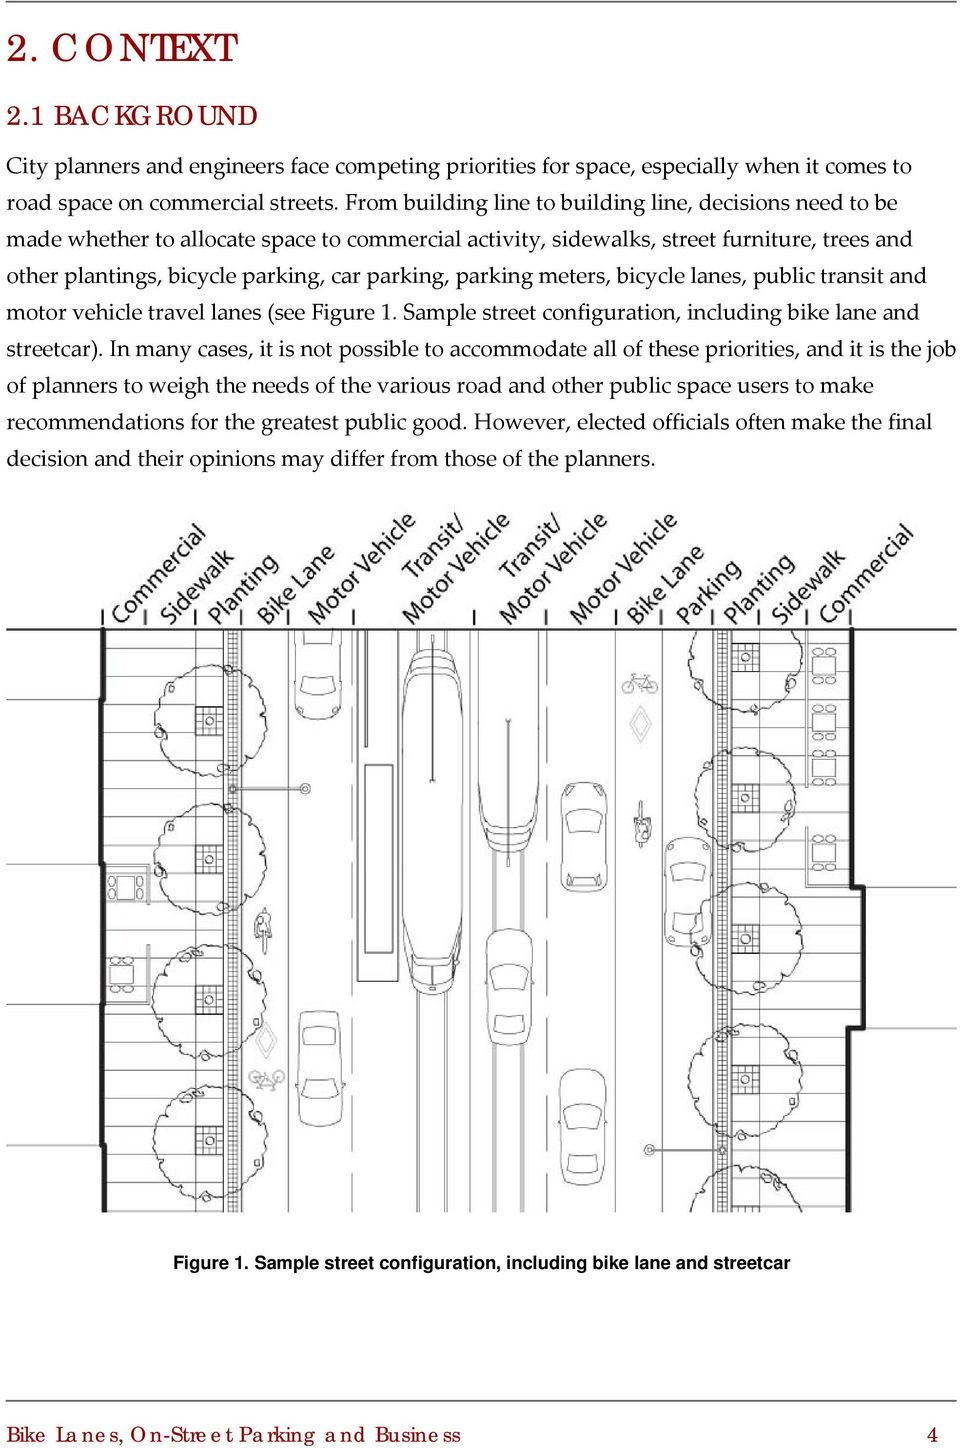 parking meters, bicycle lanes, public transit and motor vehicle travel lanes (see Figure 1. Sample street configuration, including bike lane and streetcar).